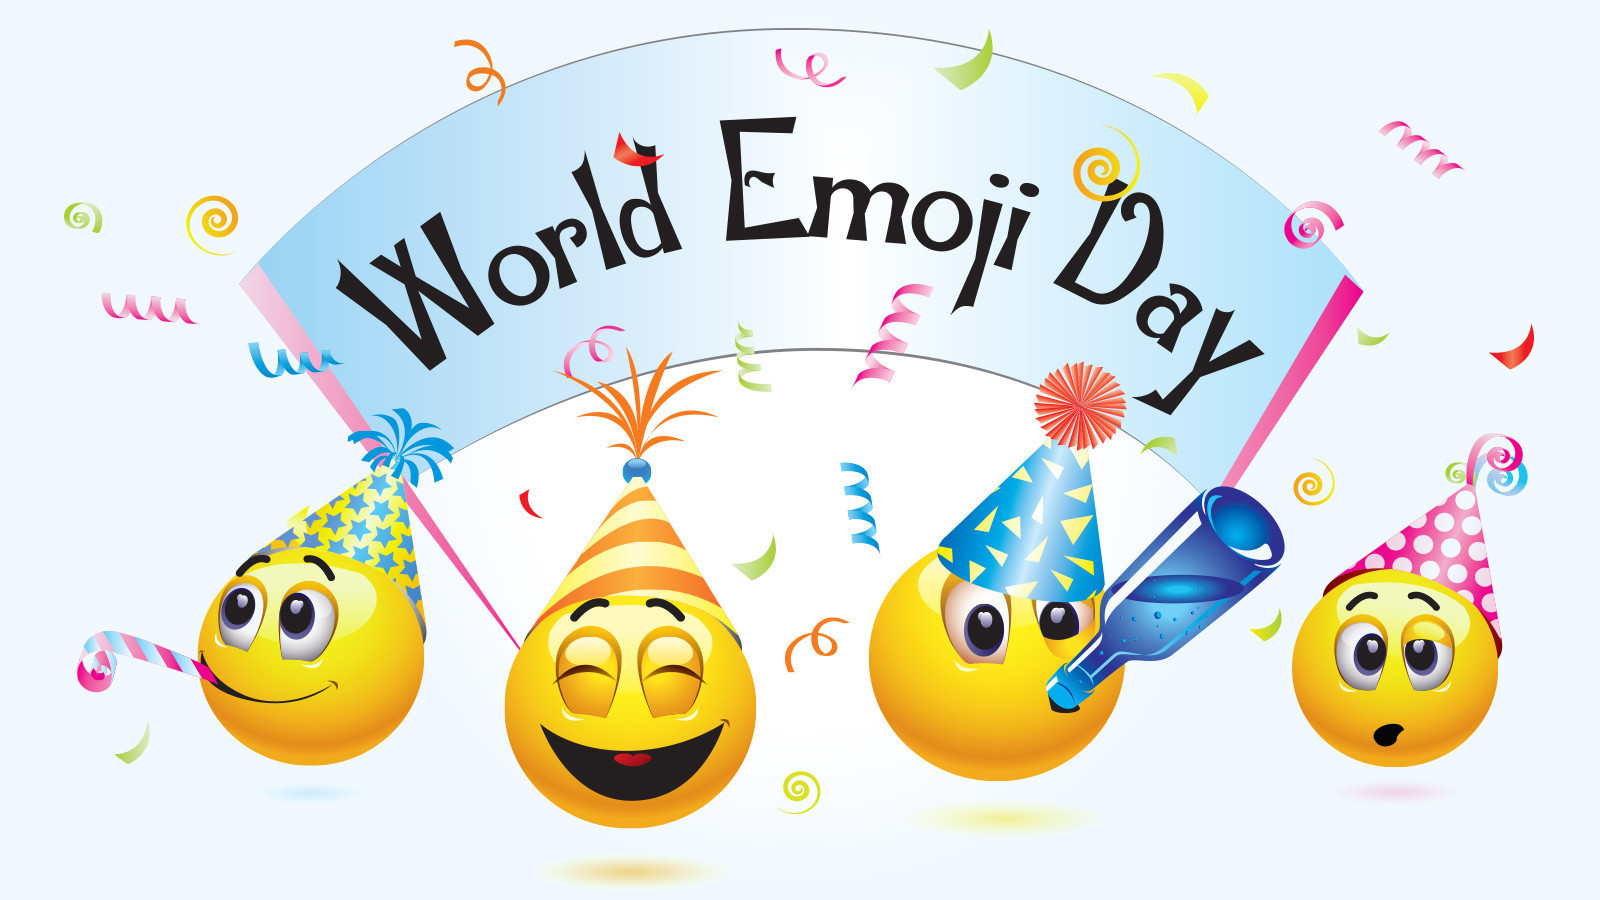 Facebook celebra il World Emoji Day con alcuni dati interessanti